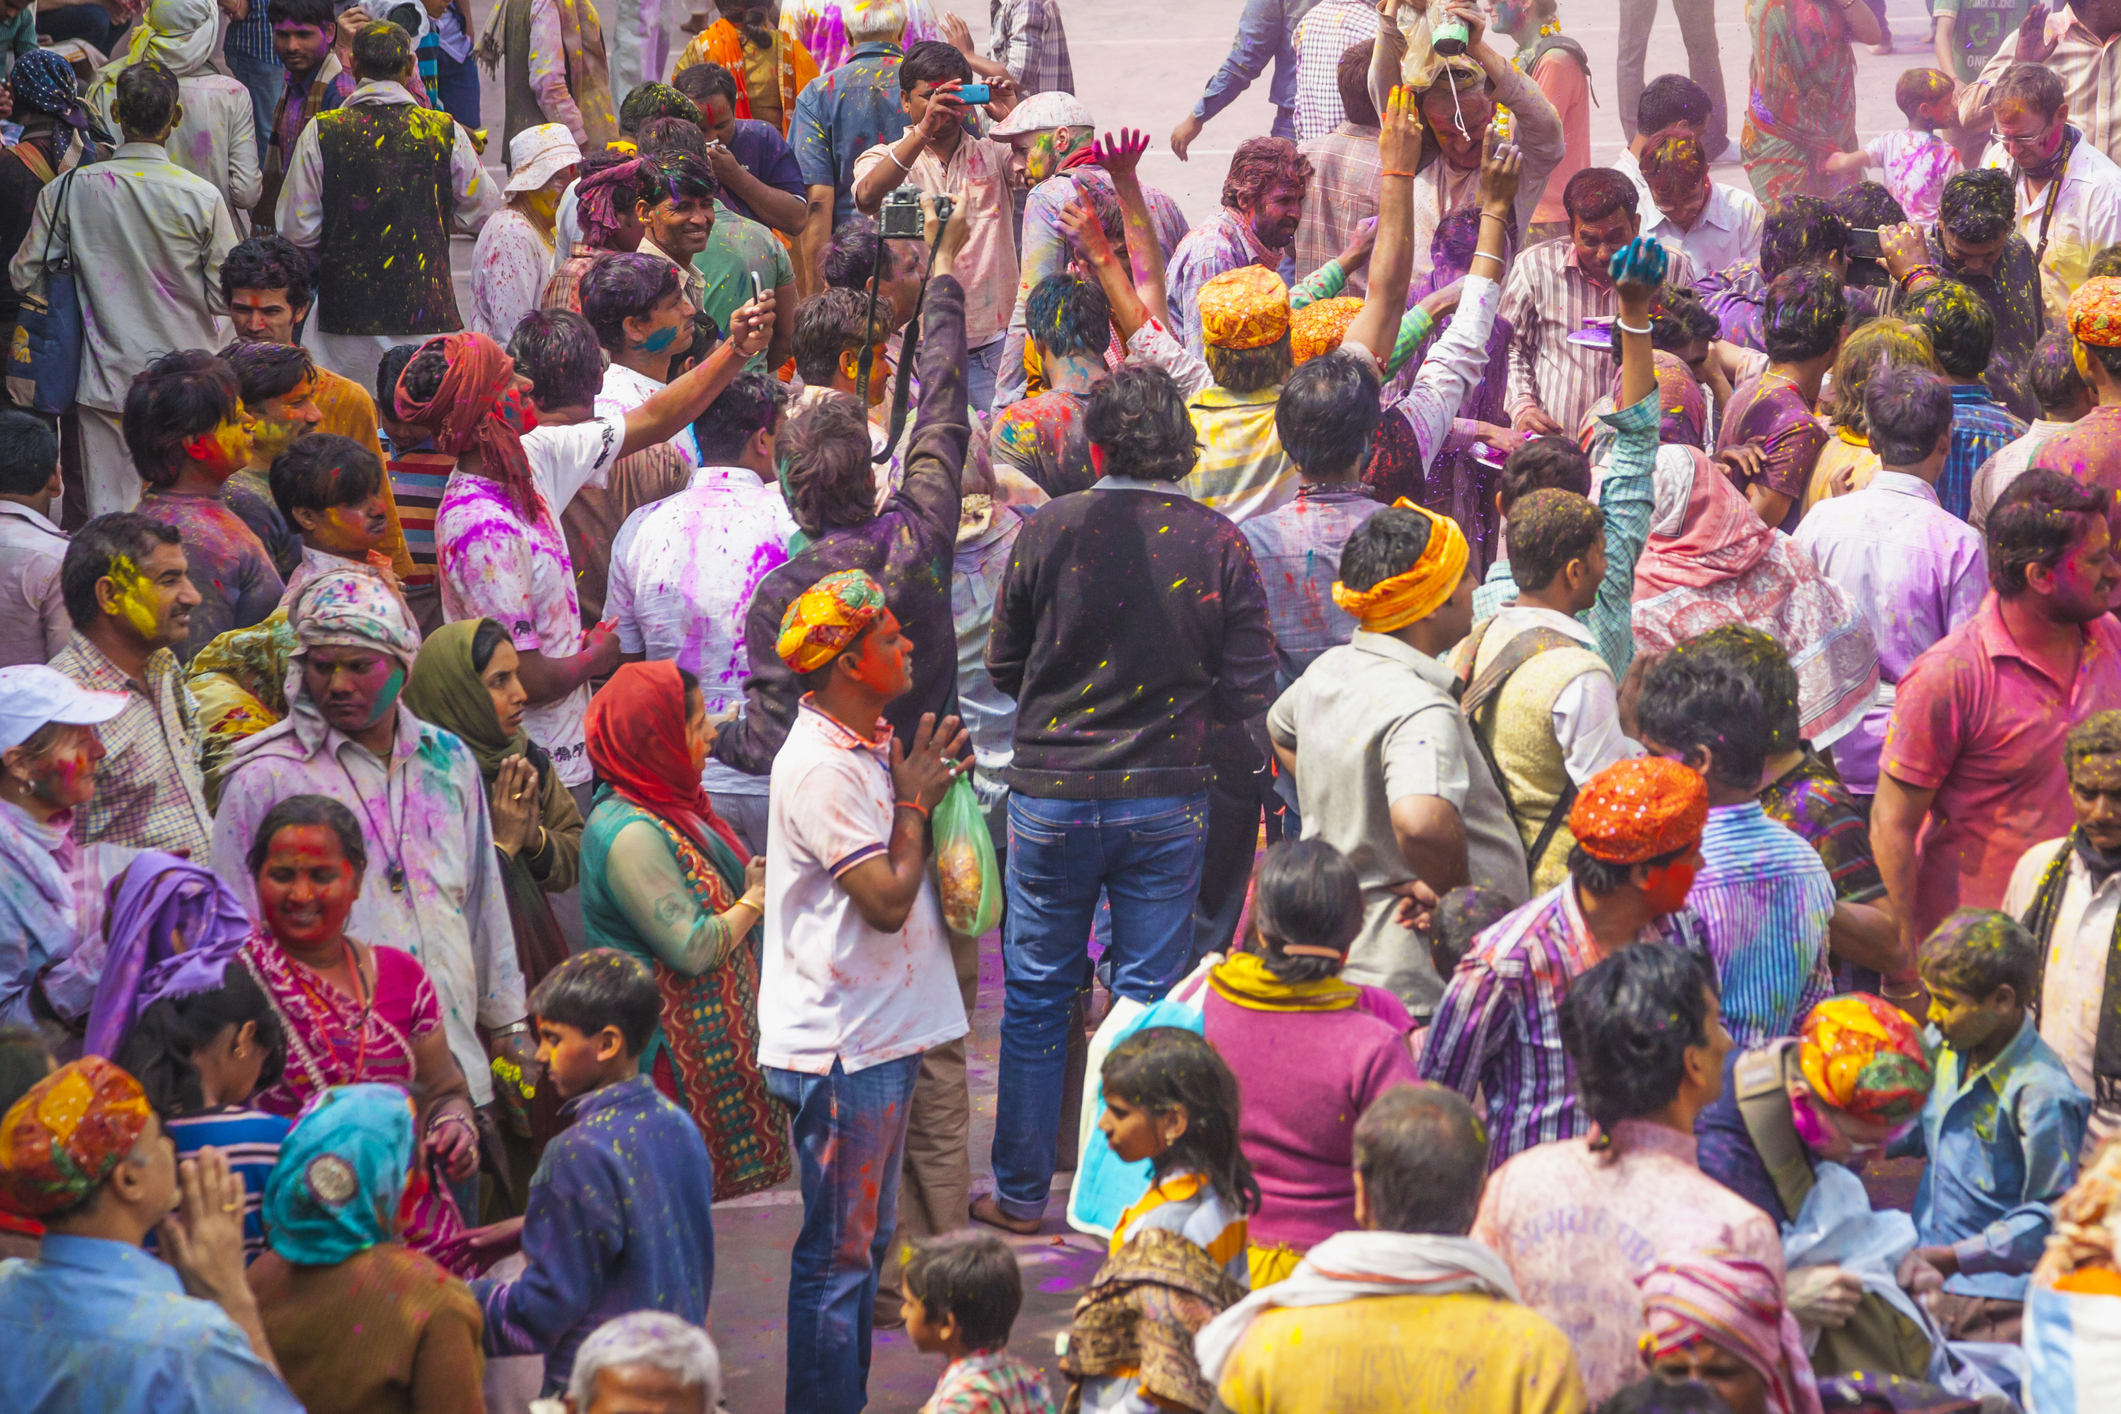 People praying and celebrating Holi near the Mathura temple.